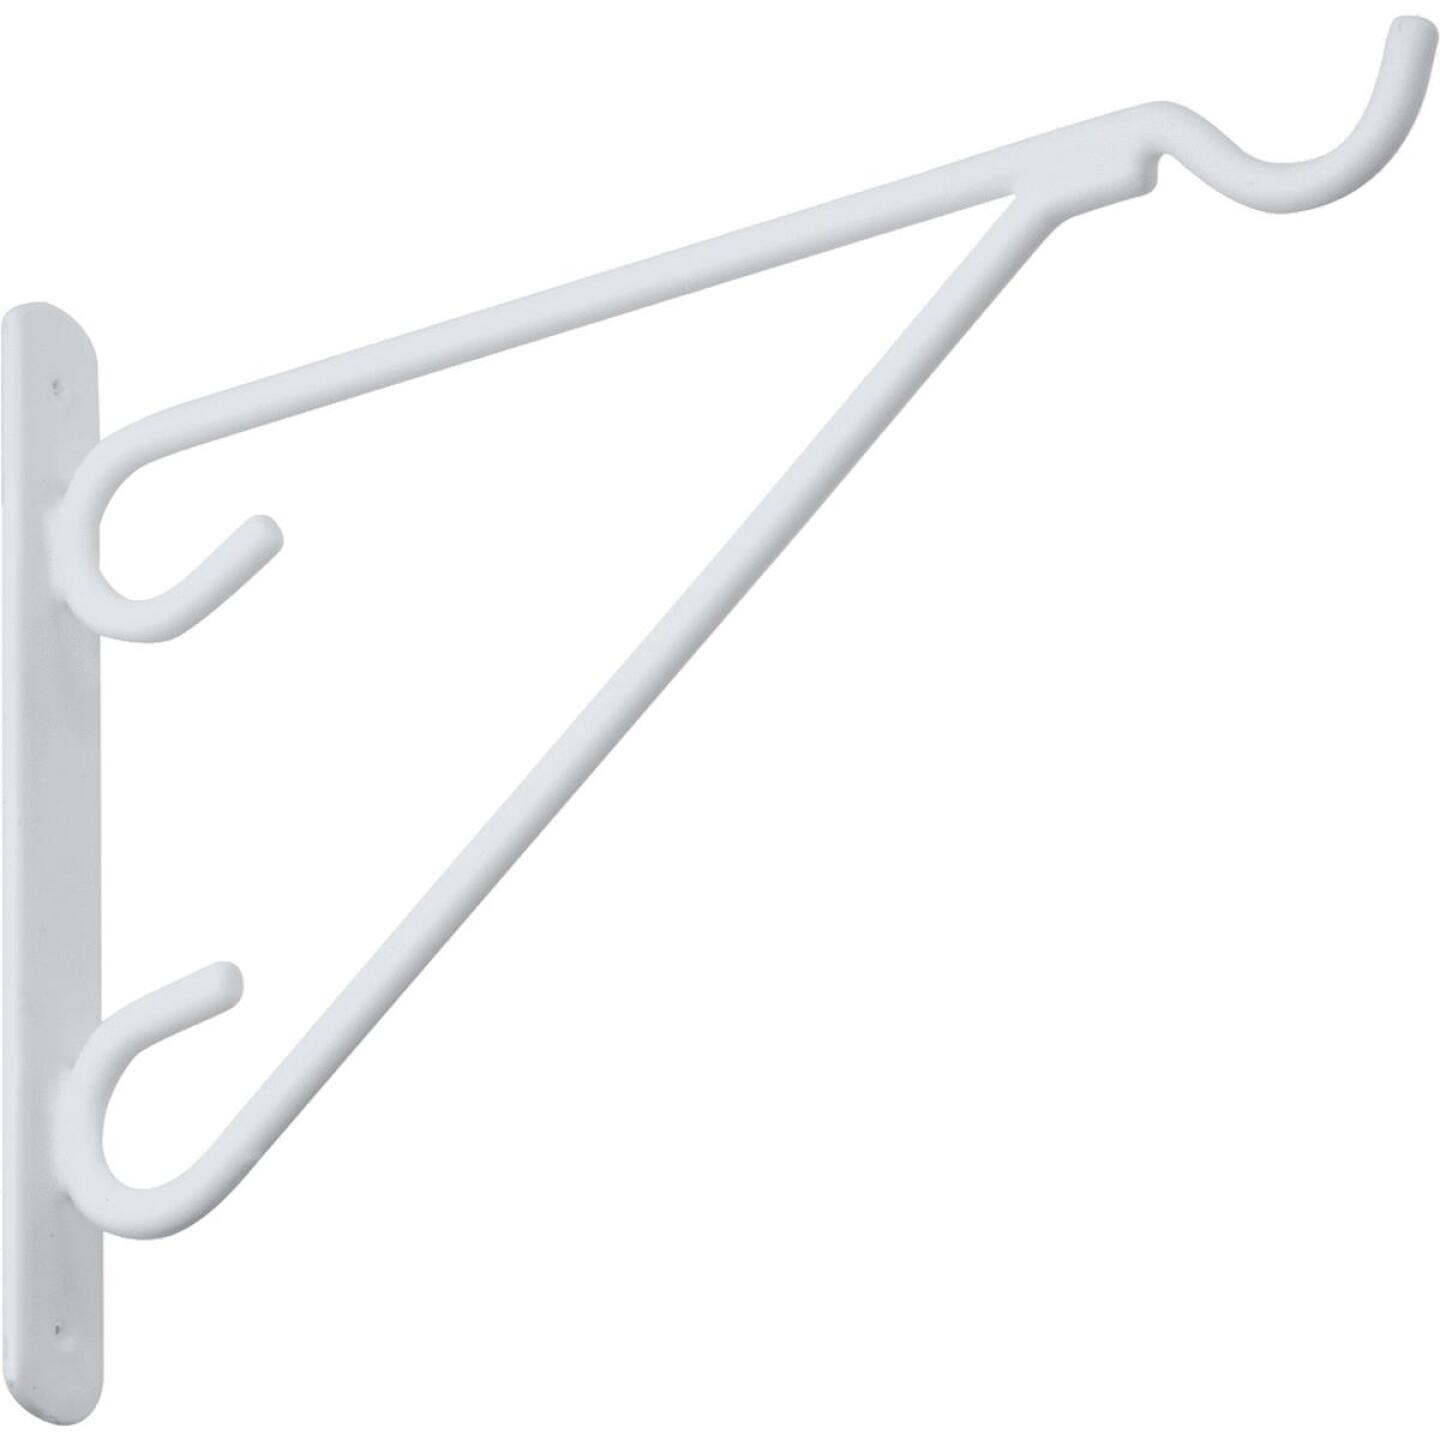 National 12 In. White Vinyl-Coated Steel Plant Hanger Bracket Image 4